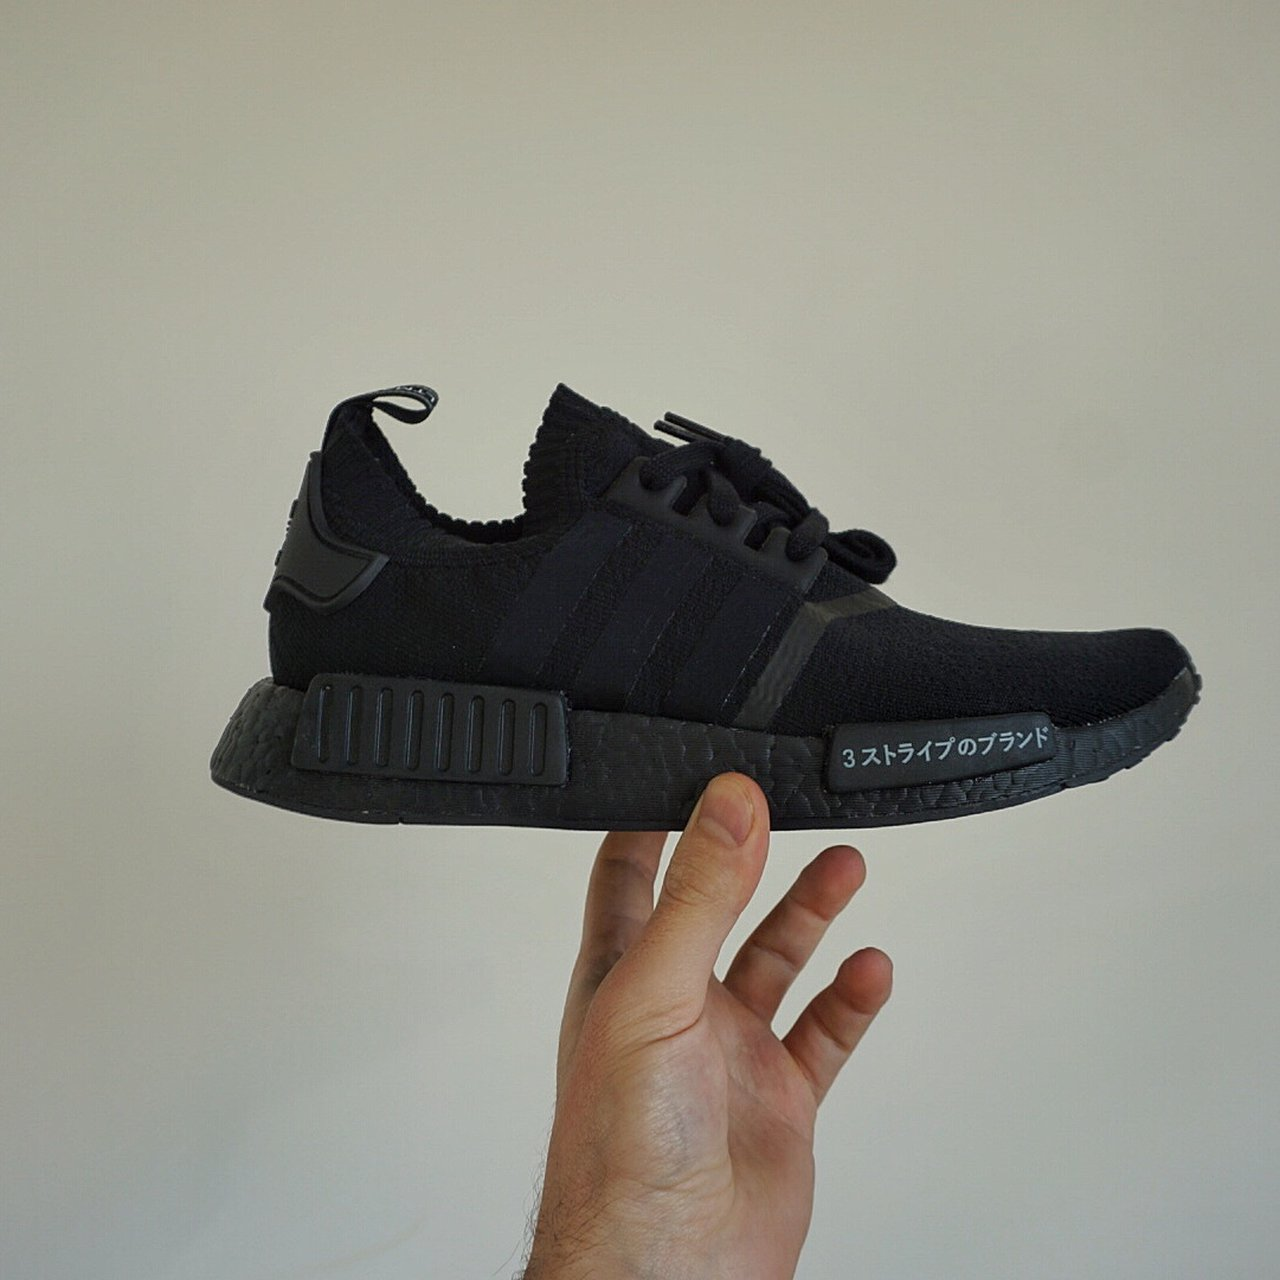 278538a5f985 Adidas NMD R1 PK Japan Triple Black US 8 1 2 -New with box - Depop